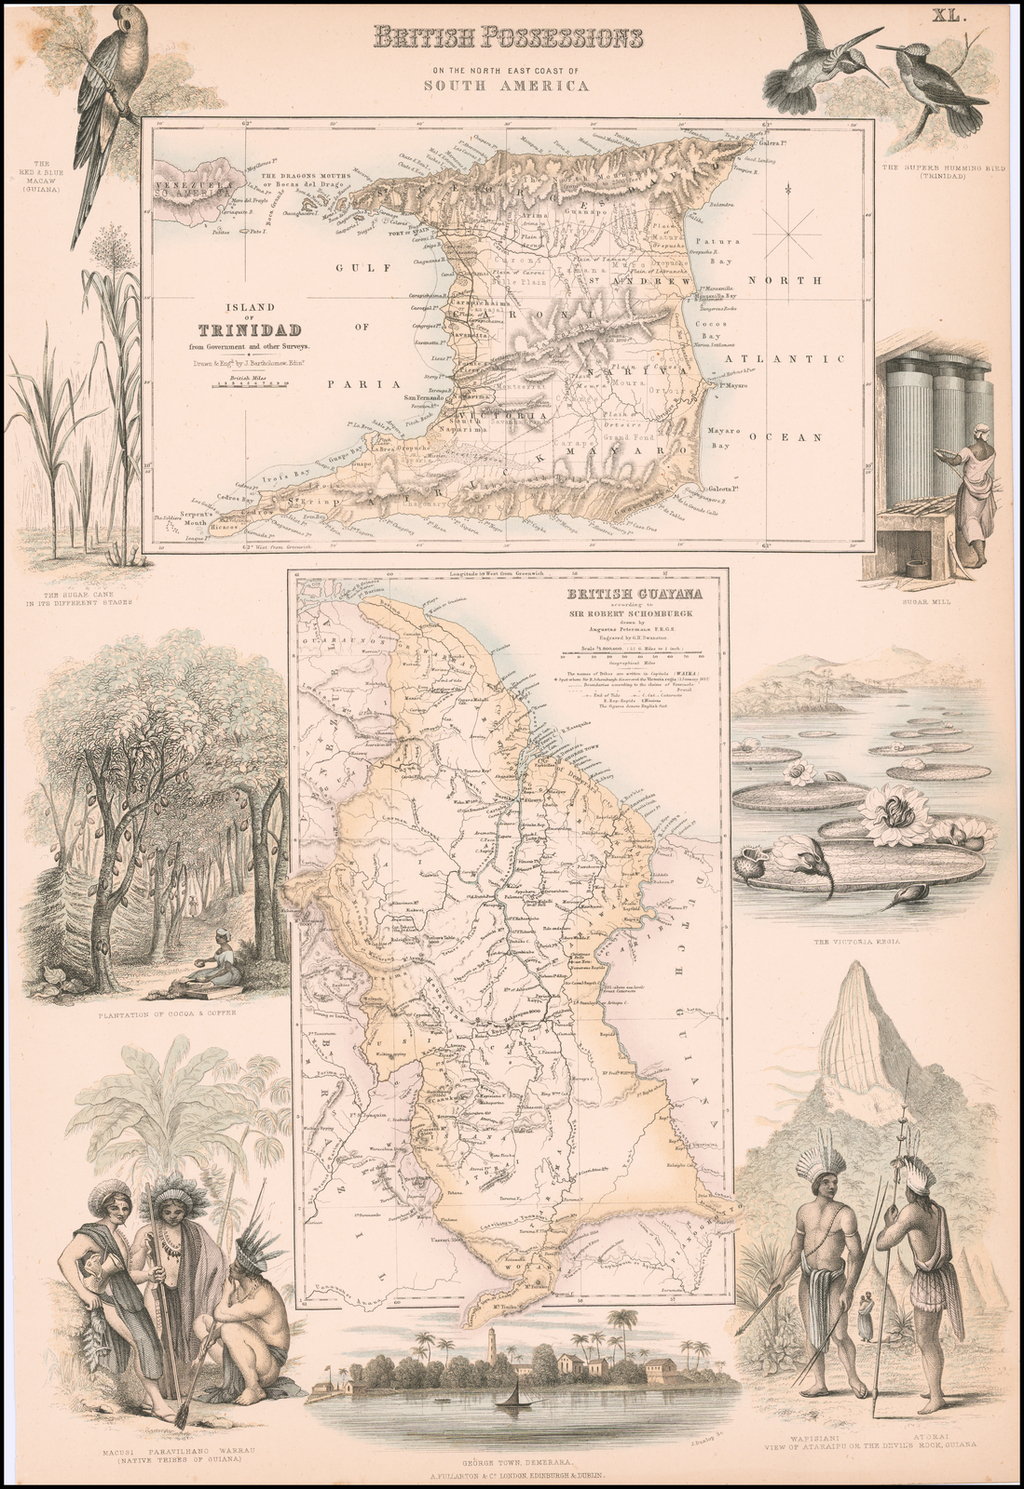 British Possessions on the North East Coast of South America (Trinidad and British Guyana)  By Archibald Fullarton & Co.